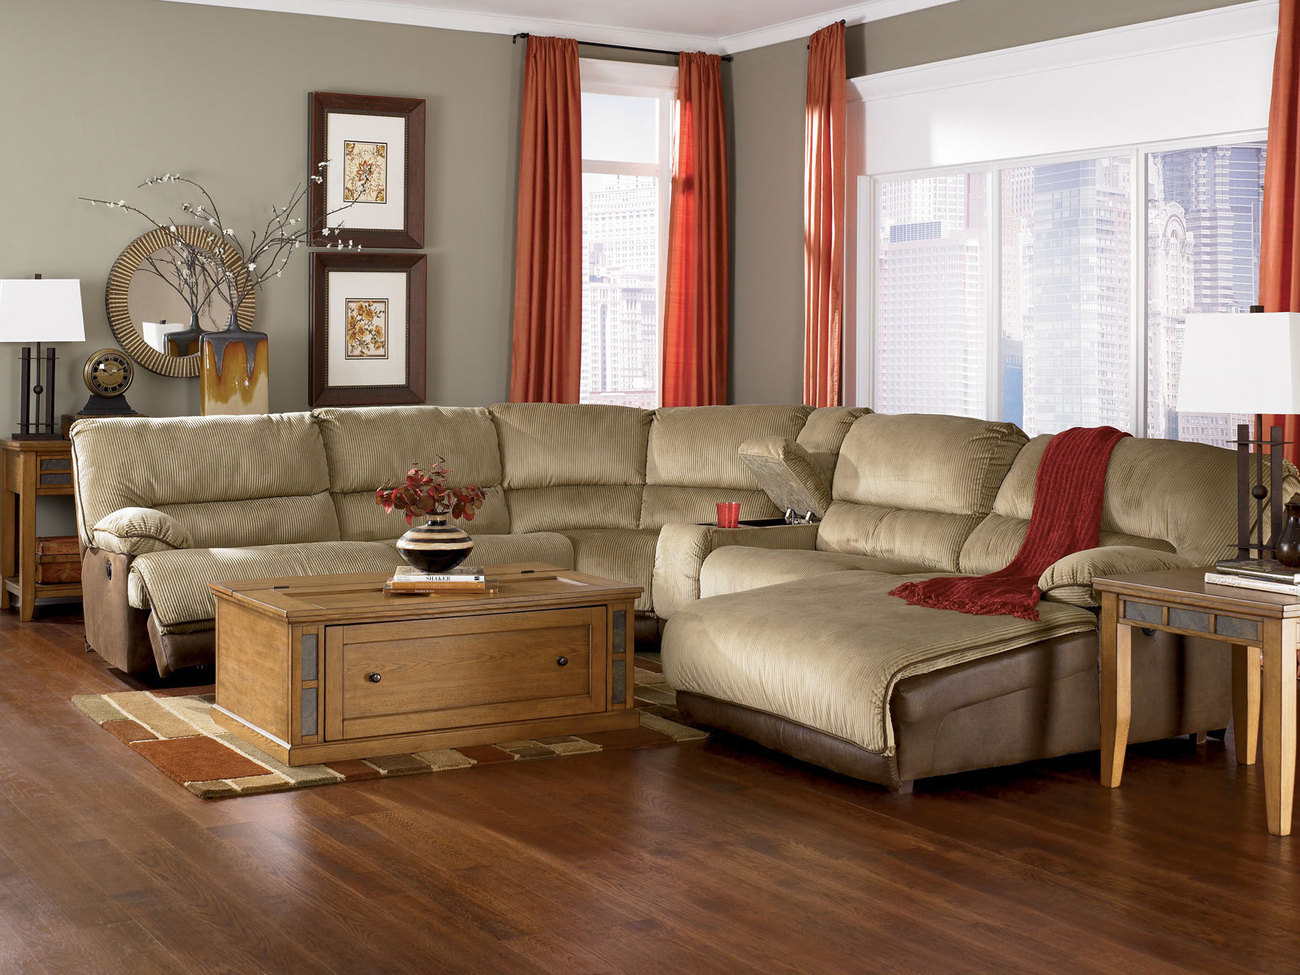 Best sectional sofas with recliners and chaise homesfeed for Chaise living room